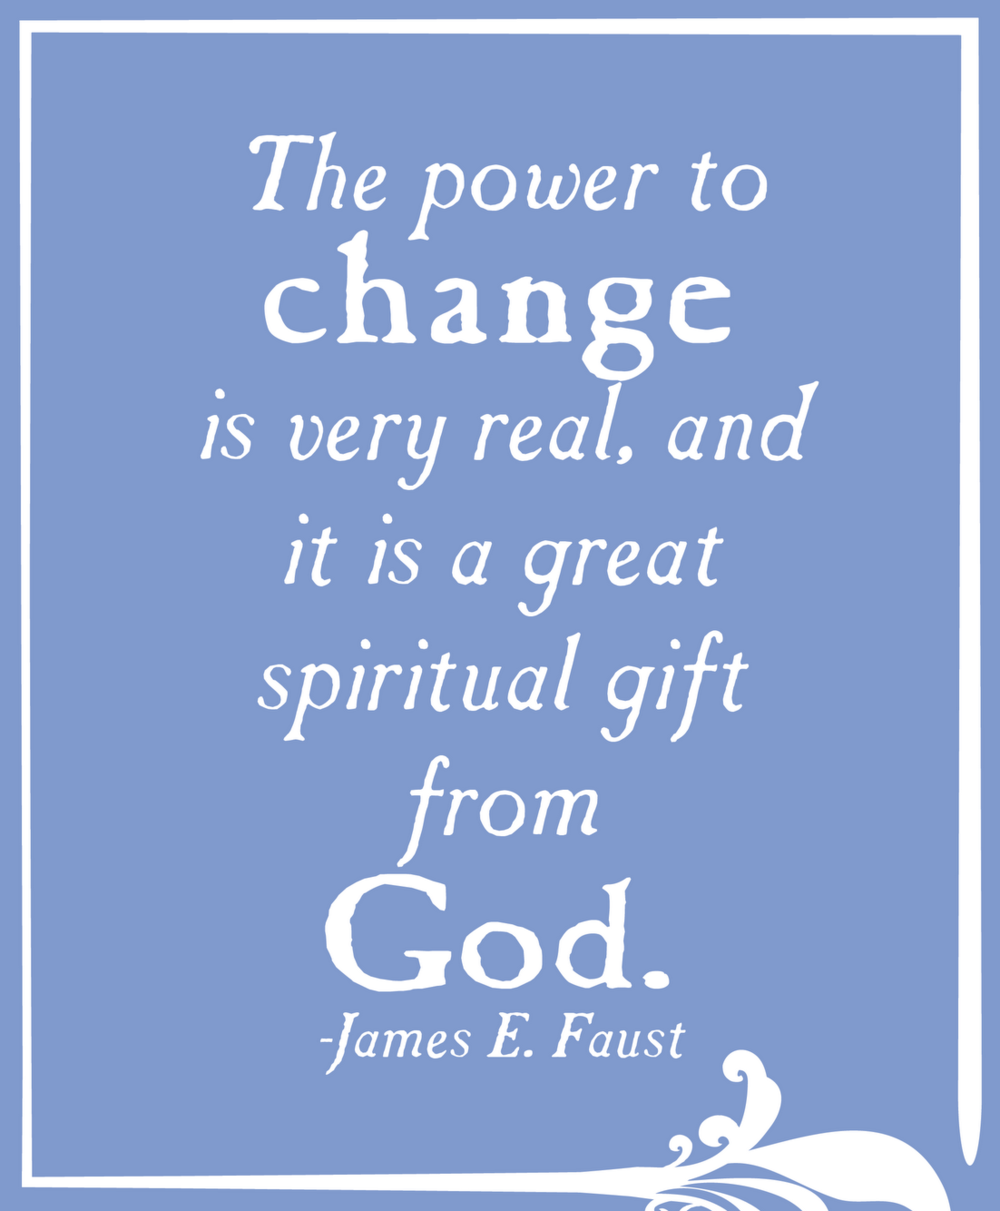 The power of change is very real, and is a great spiritual gift from God. -James E Faust